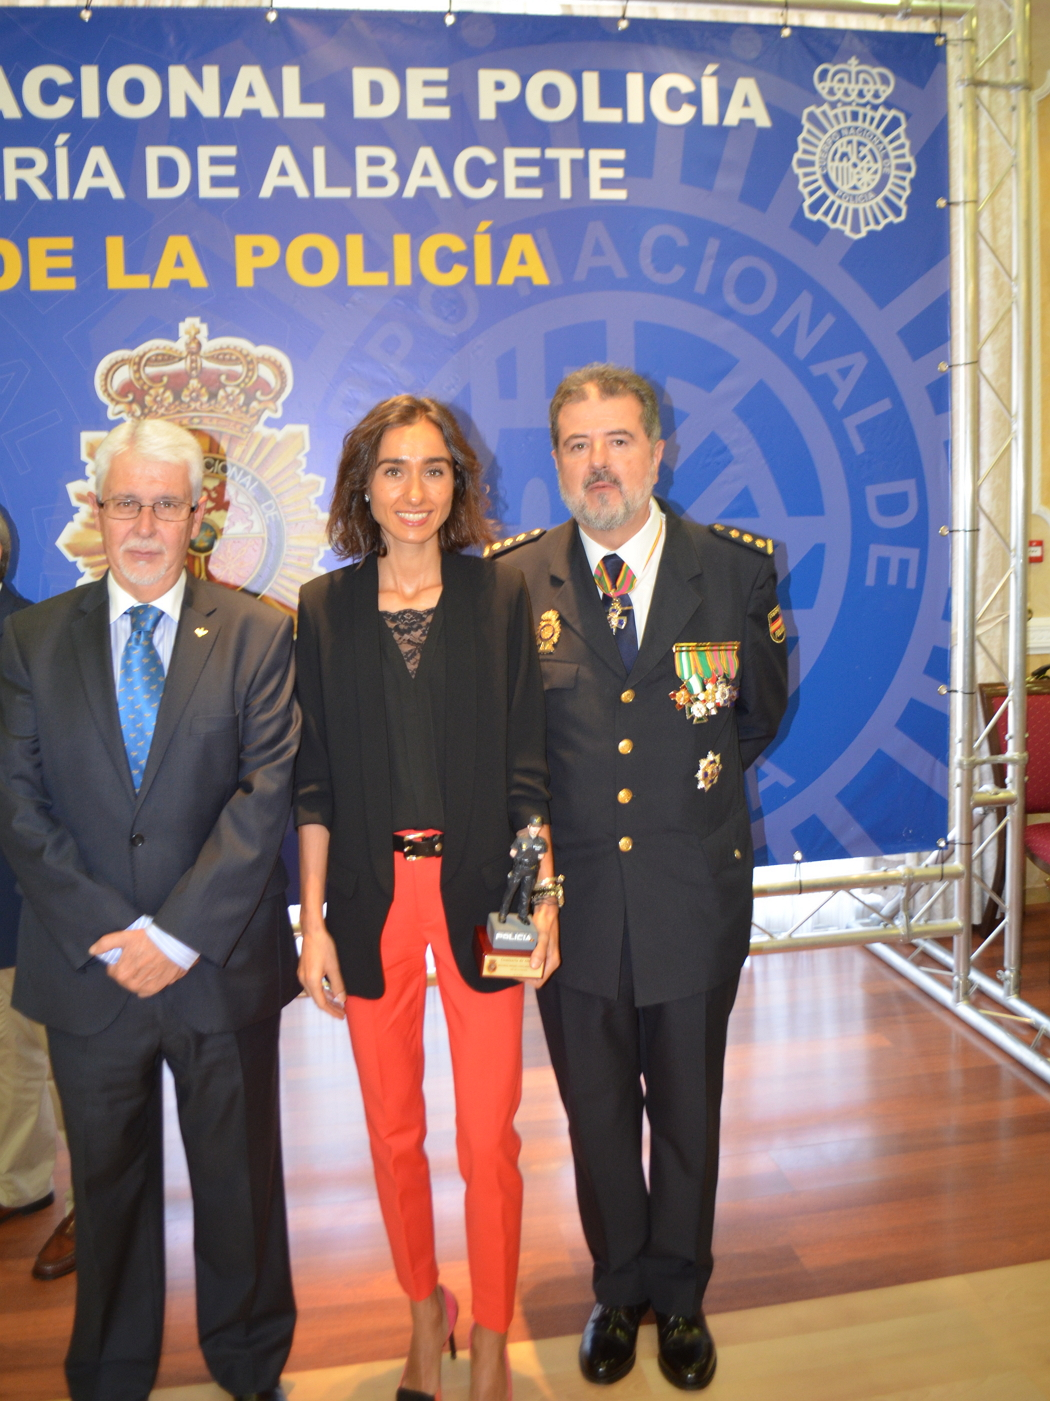 https://blog.globalcaja.es/wp-content/uploads/2016/10/DSC_4941.jpg